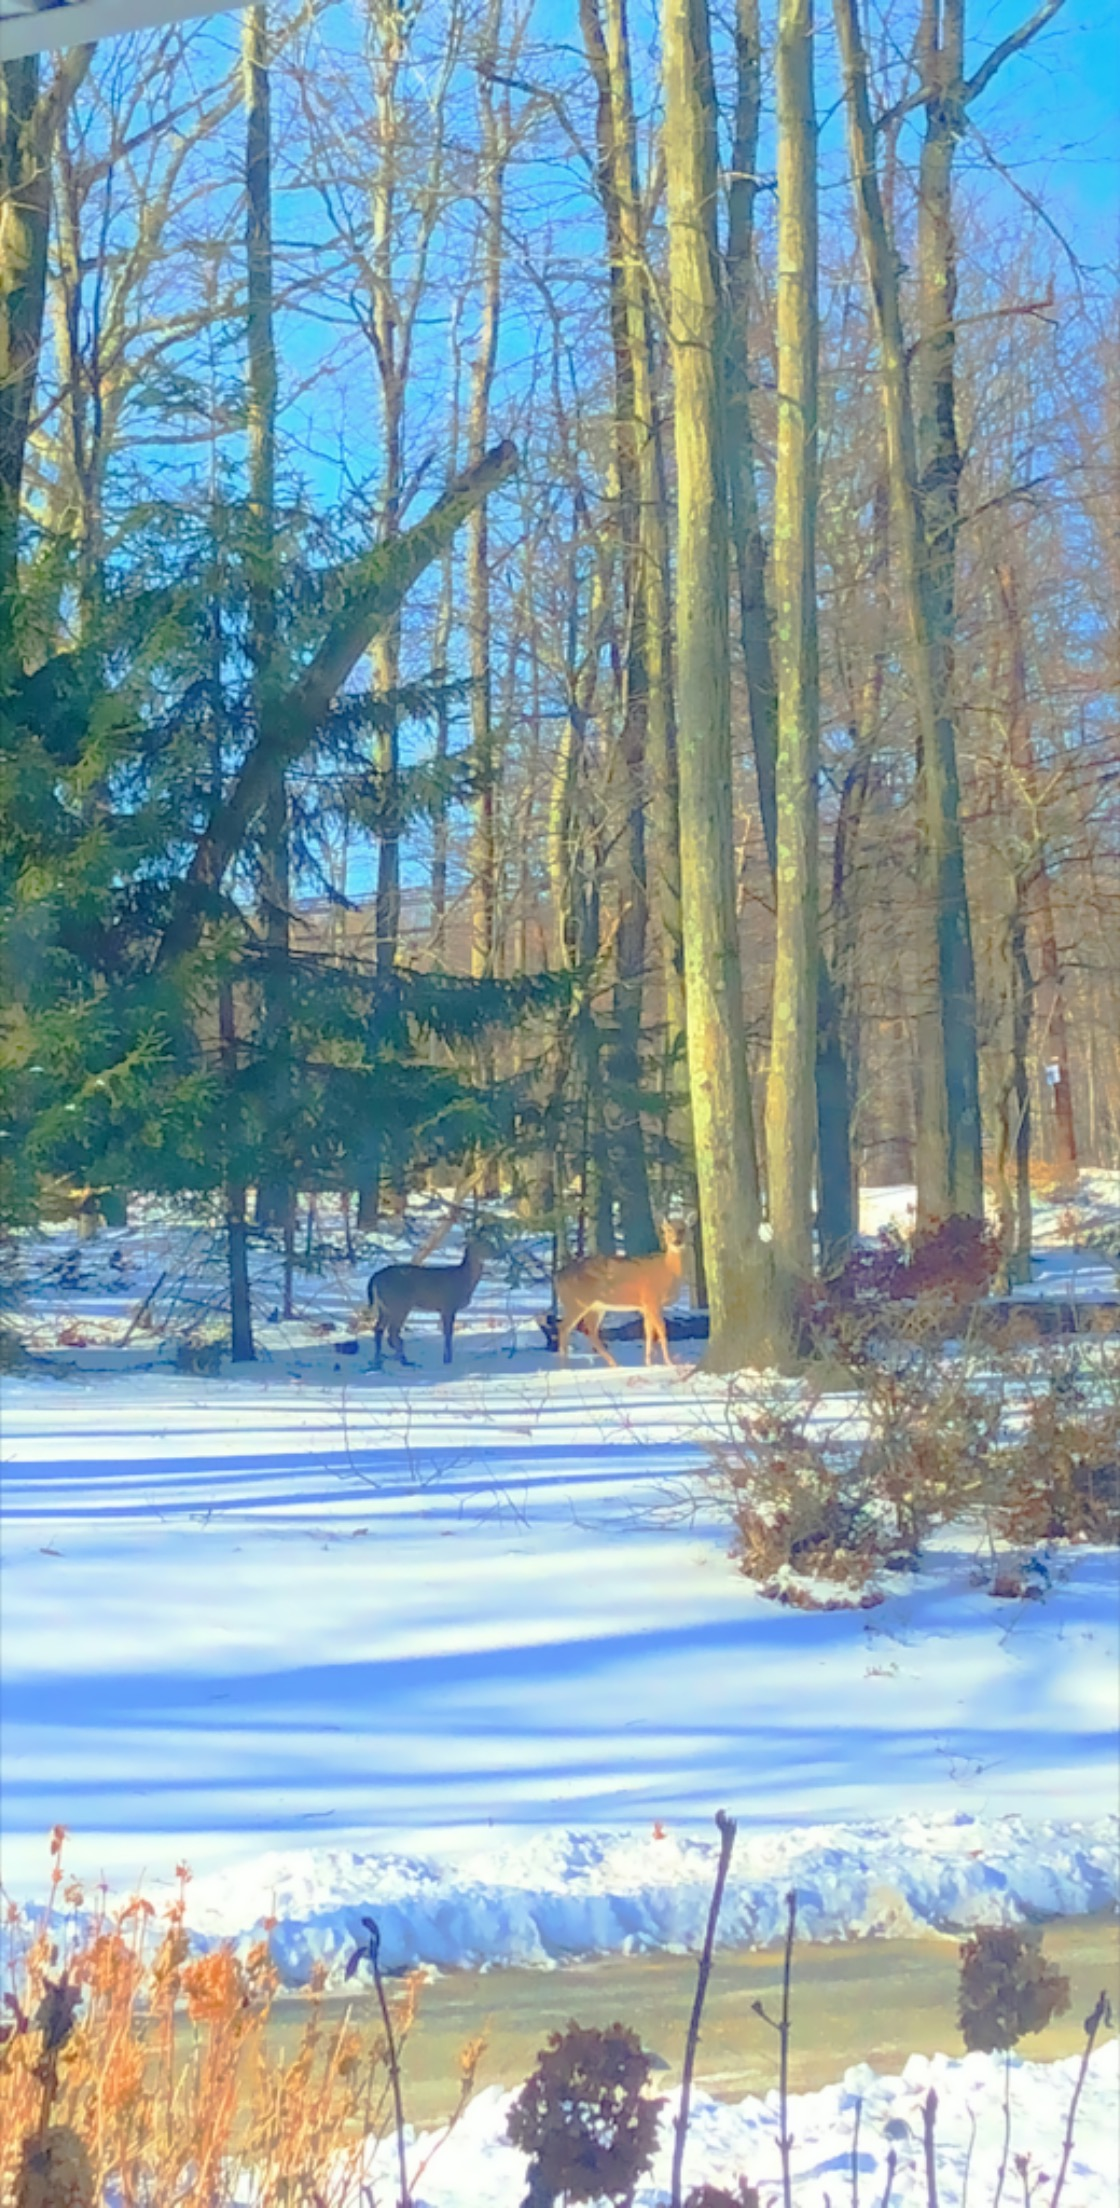 Deer in my Yard